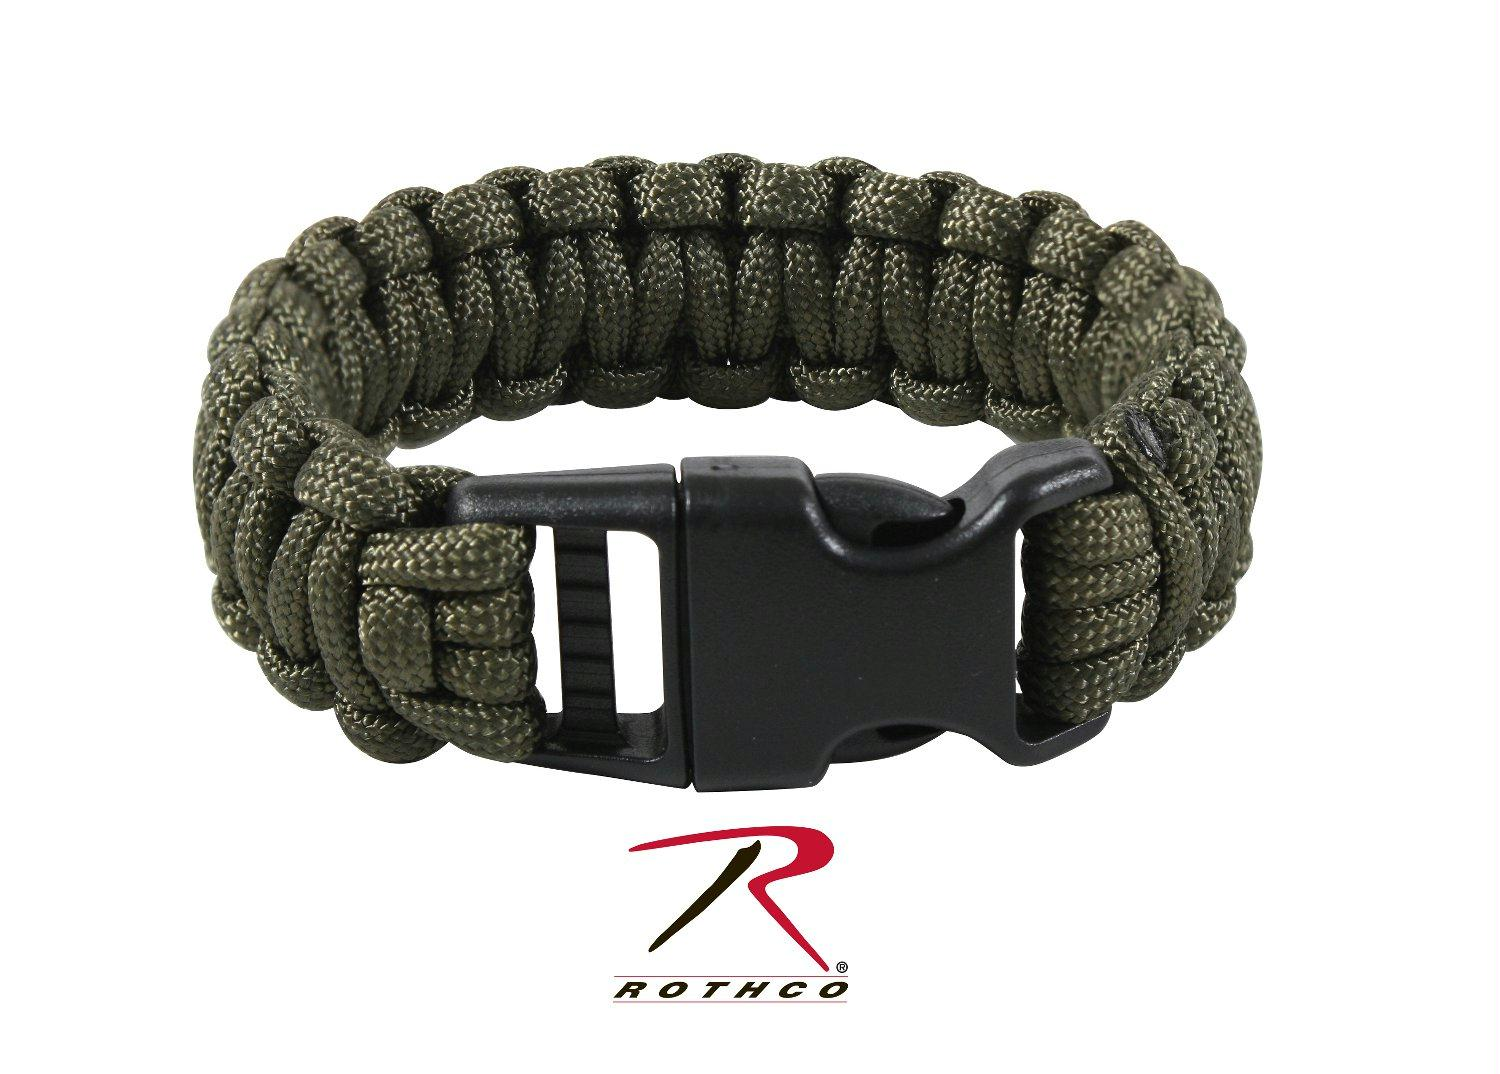 Rothco Deluxe Paracord Bracelets - Olive Drab / 8 Inches